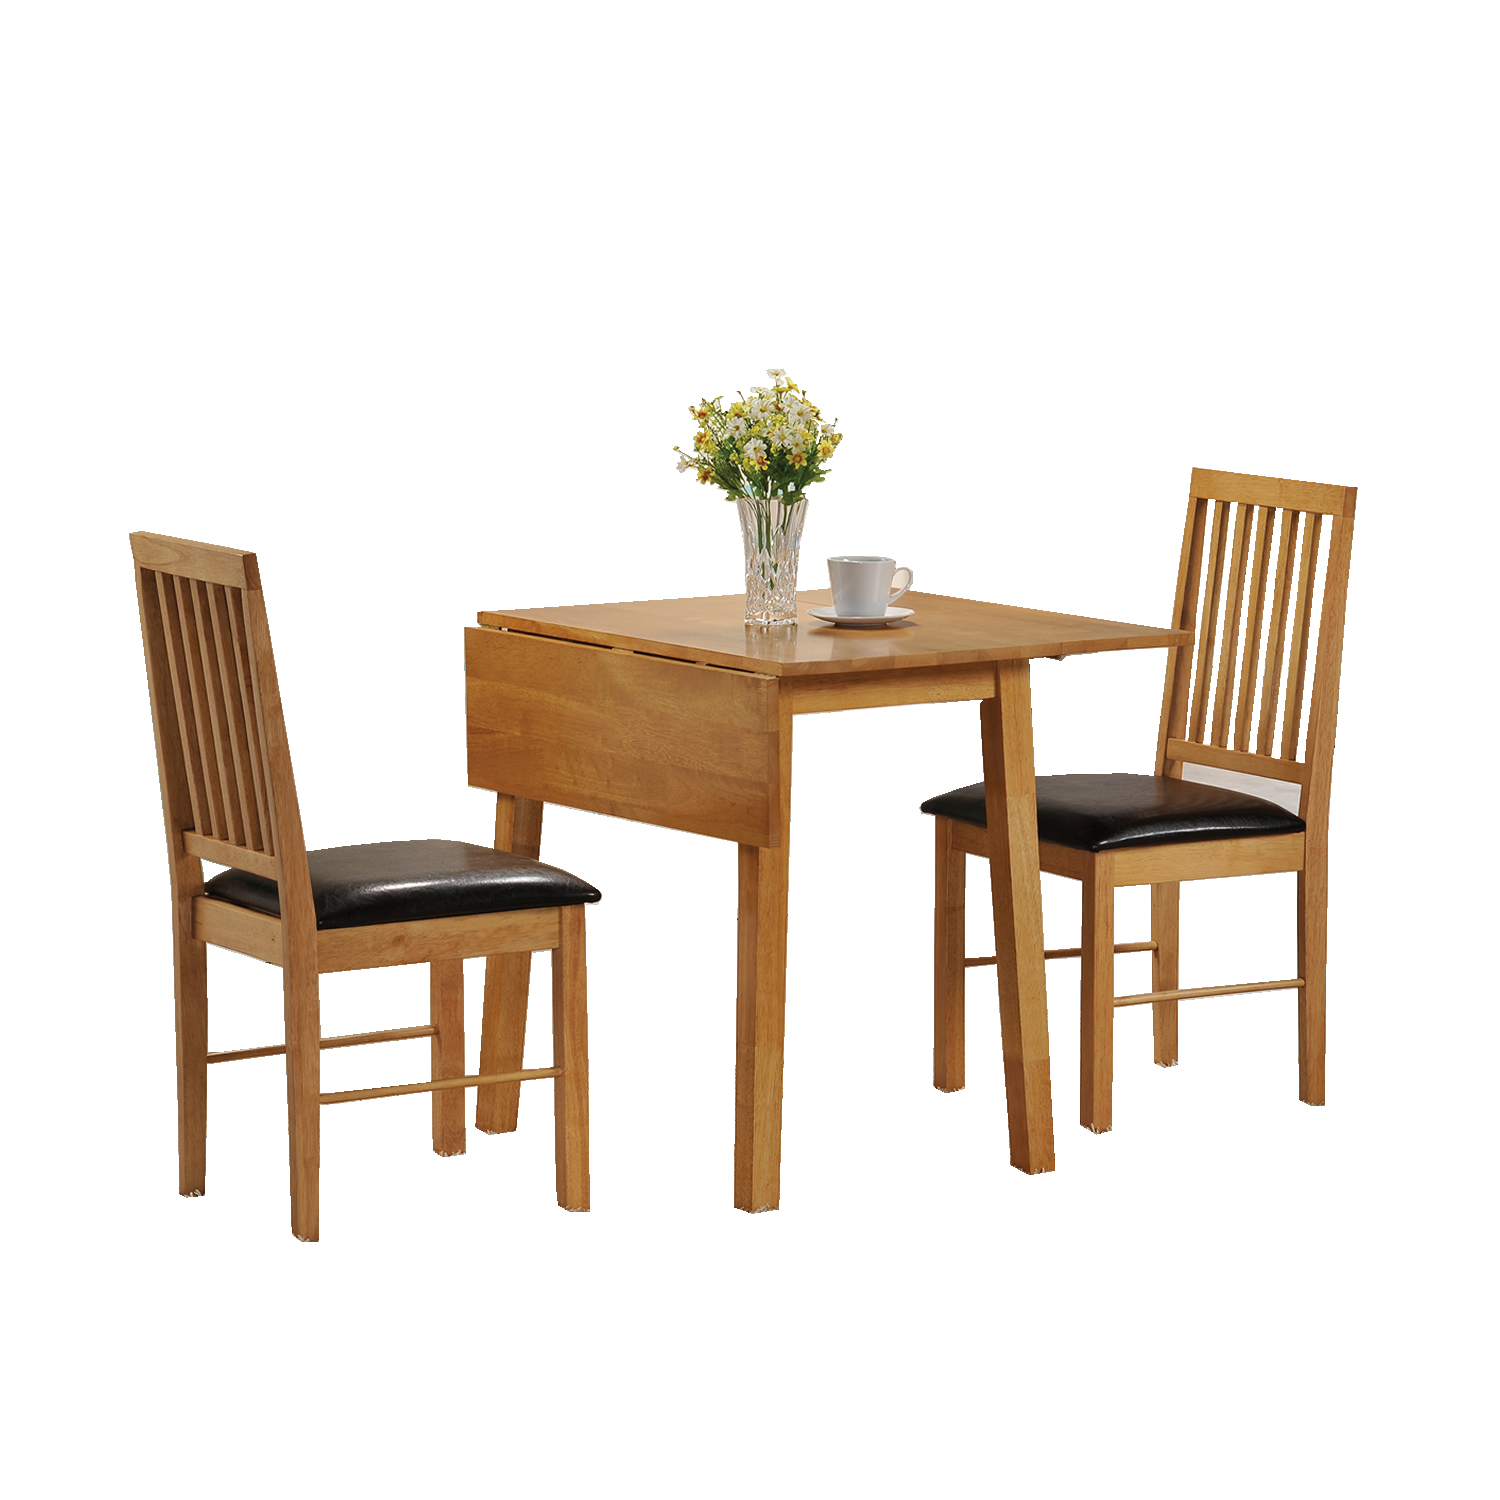 Drop leaf tables for small spaces homesfeed for Small dining room tables